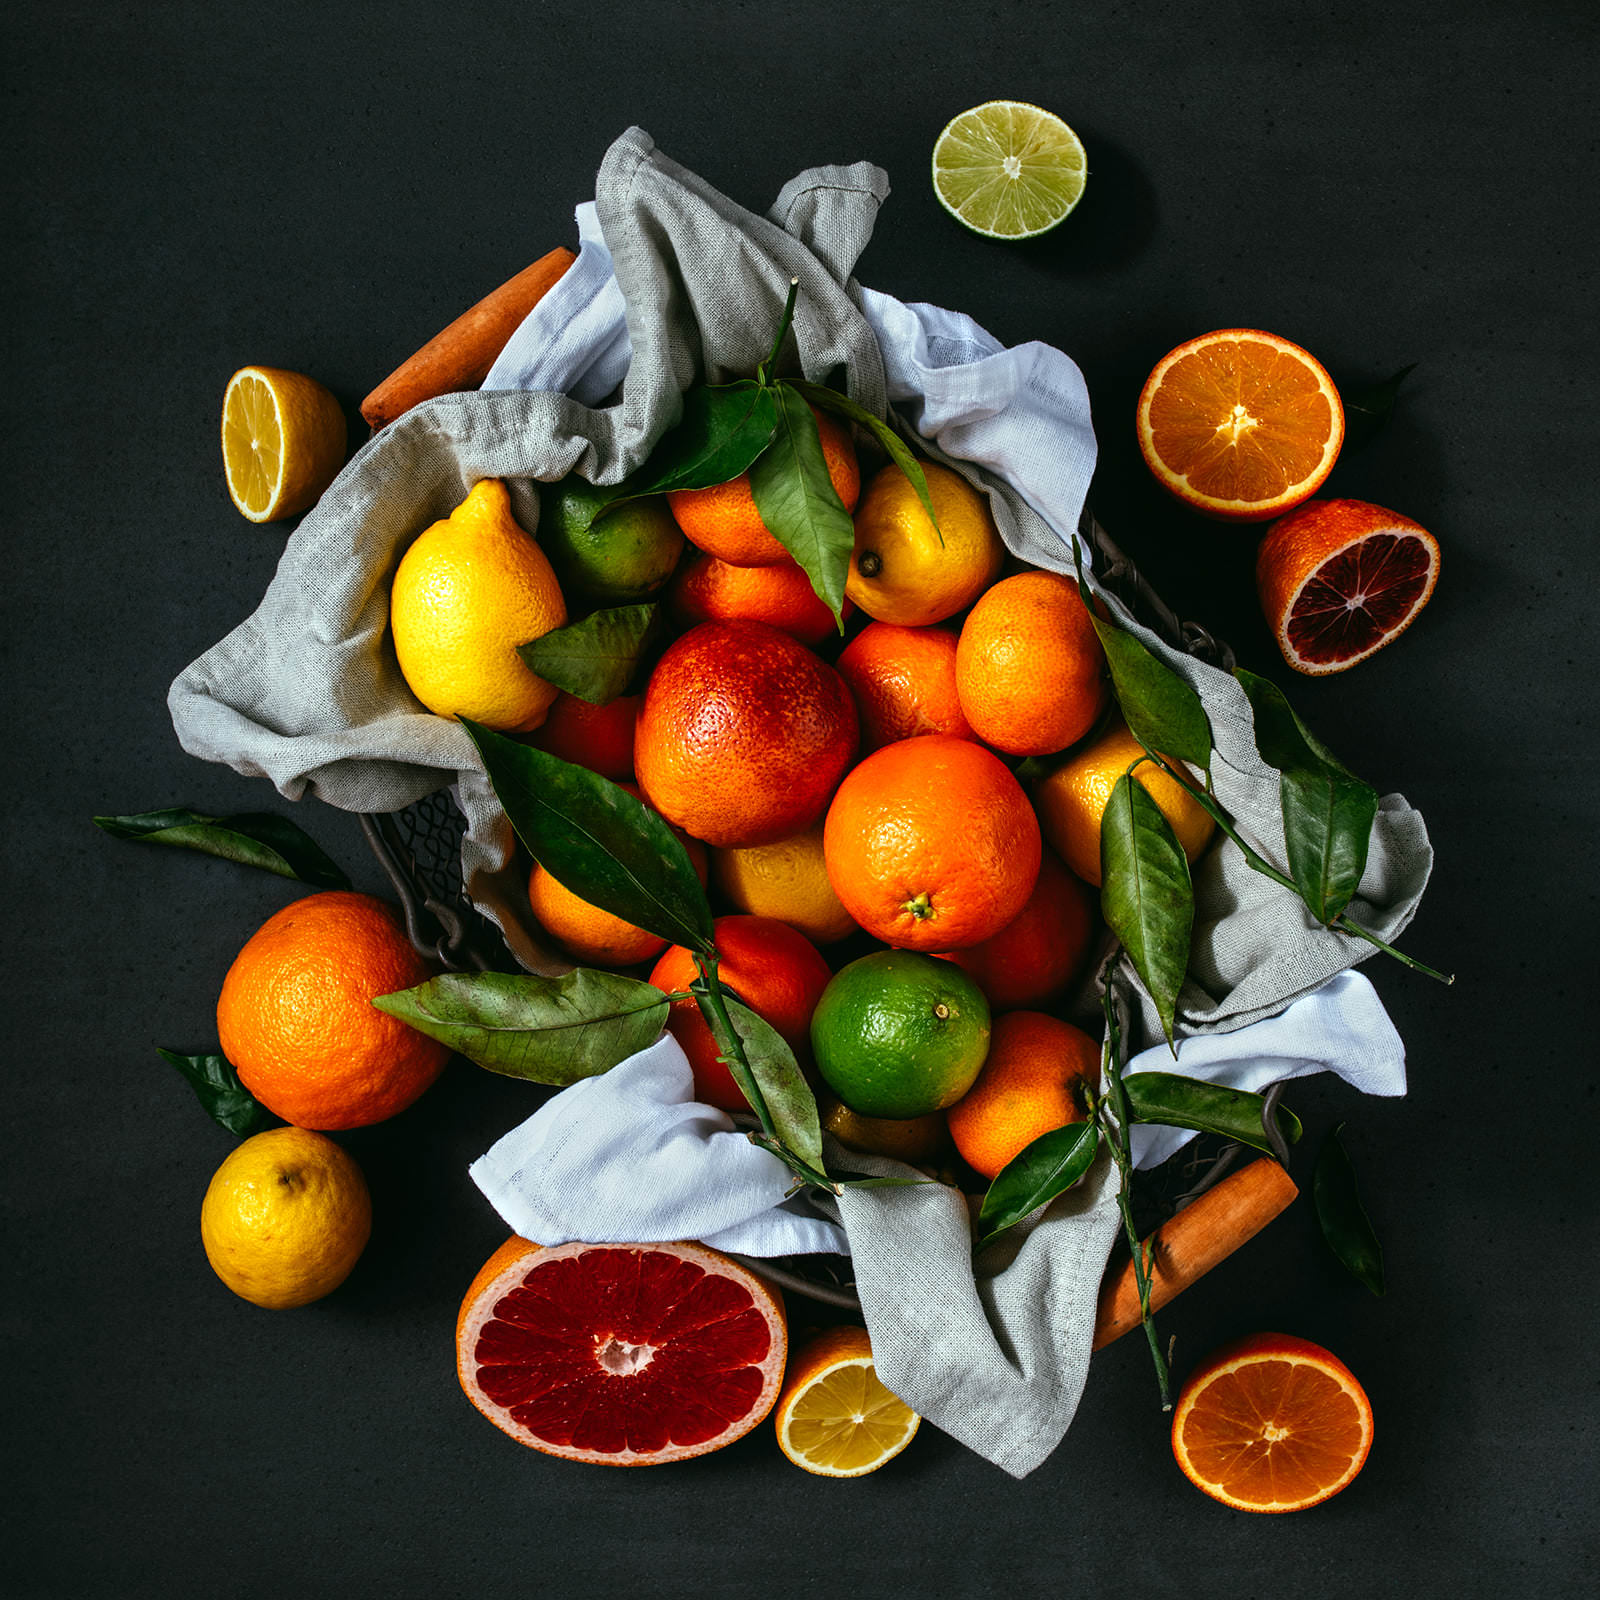 a basket full of fruits like lemonades and oranges photographed from above